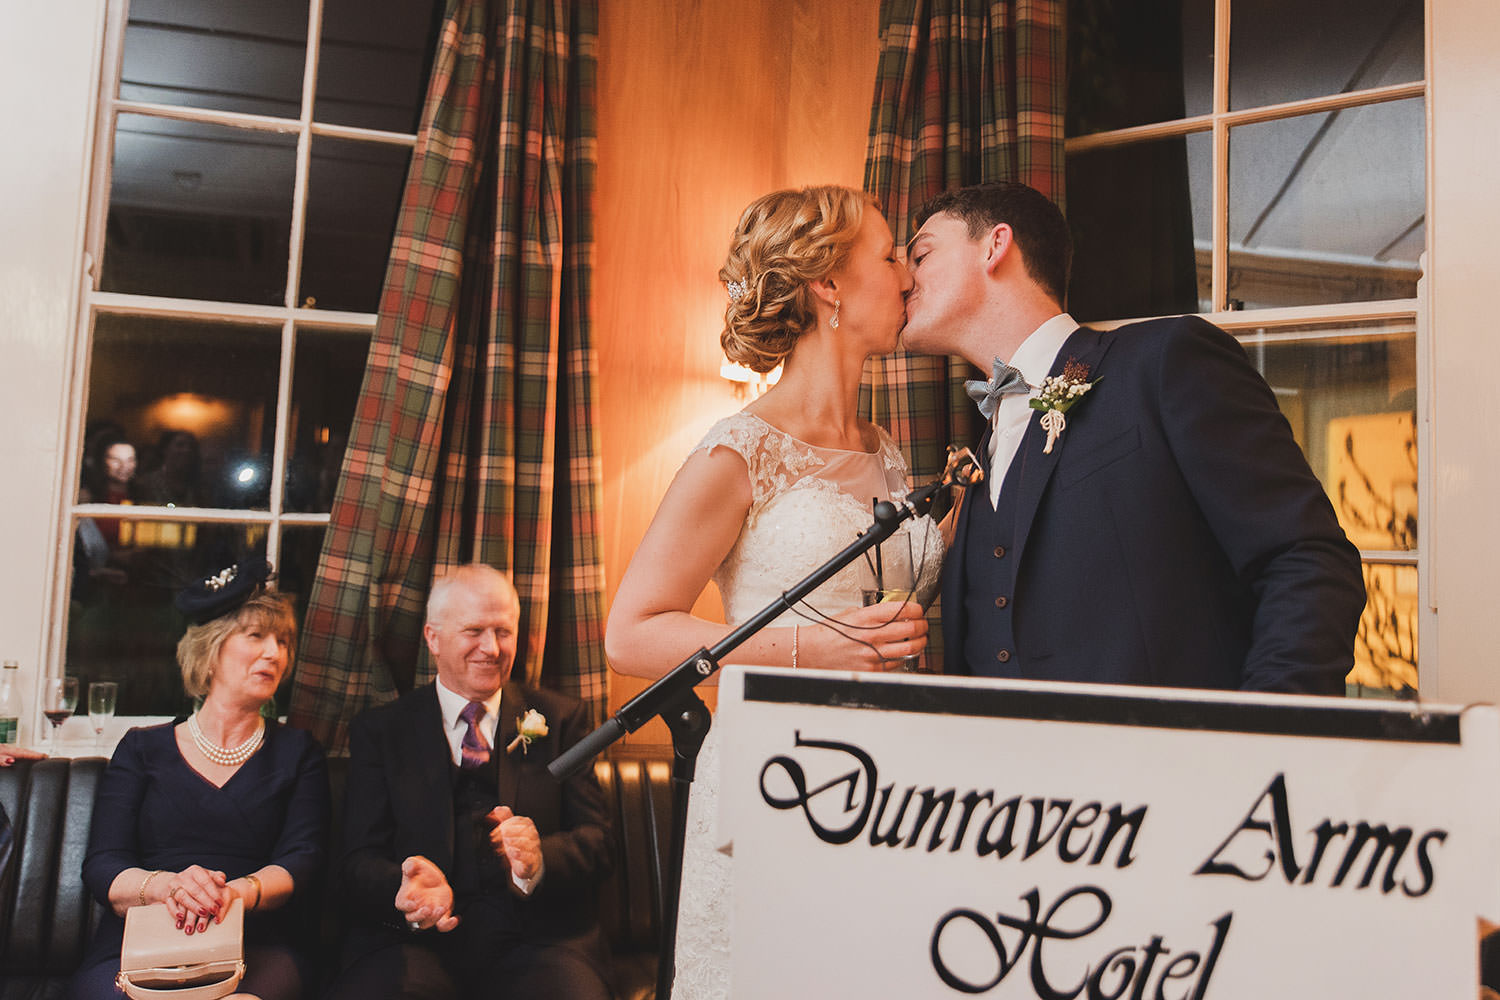 dunraven-arms-hotel-wedding-photography-147.jpg